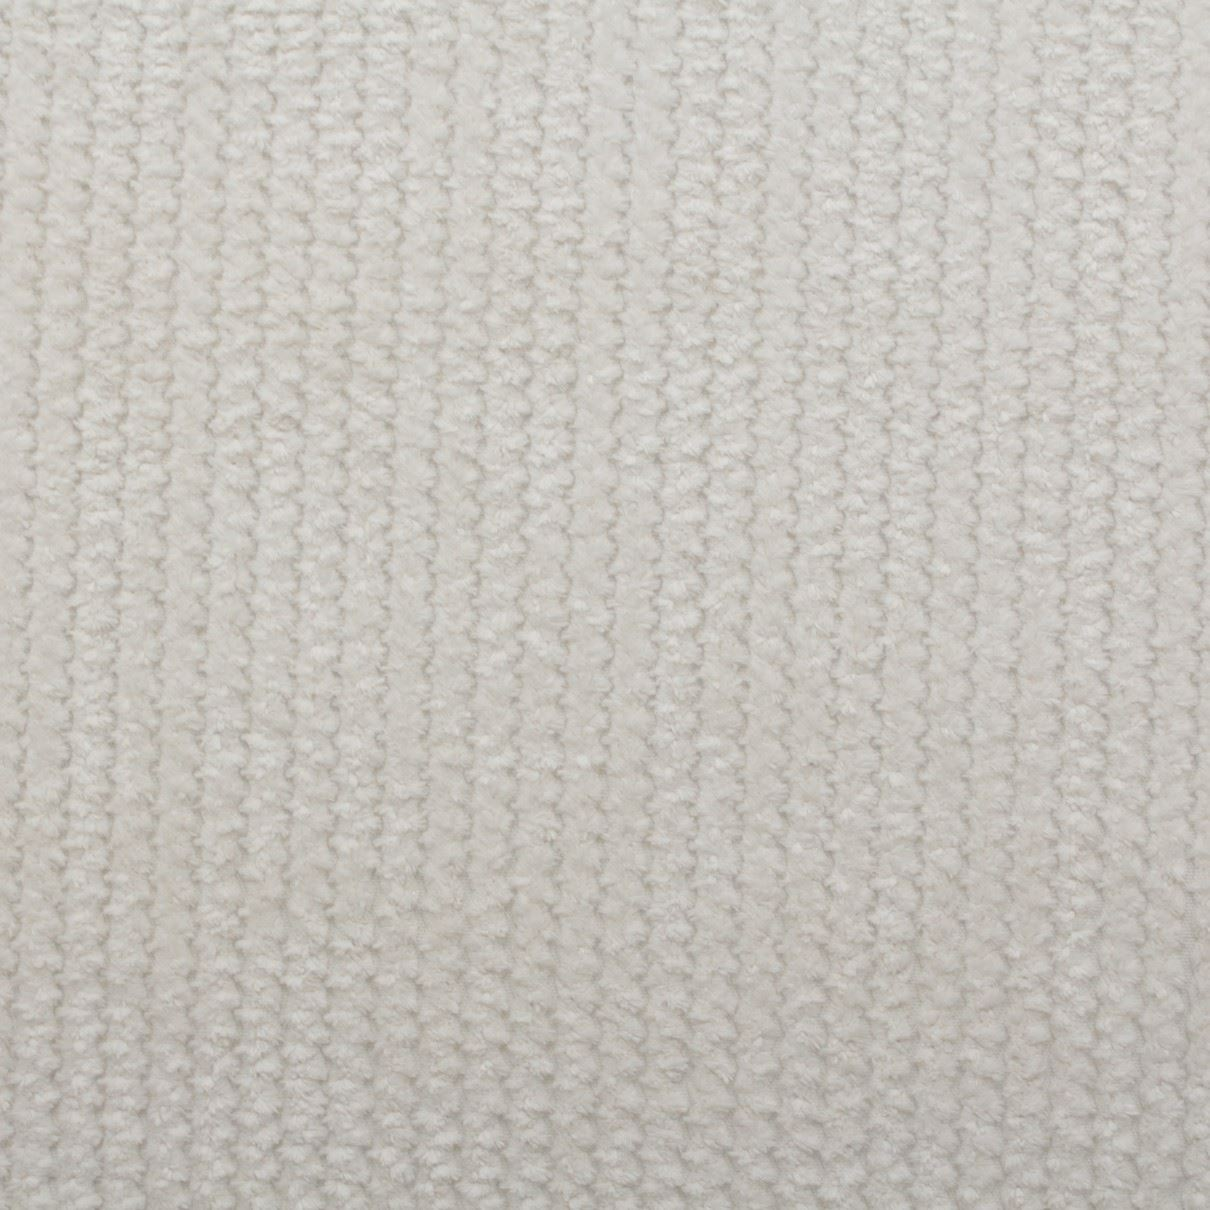 White Sofa Fabric Free Shipping White Sofa Fabric French